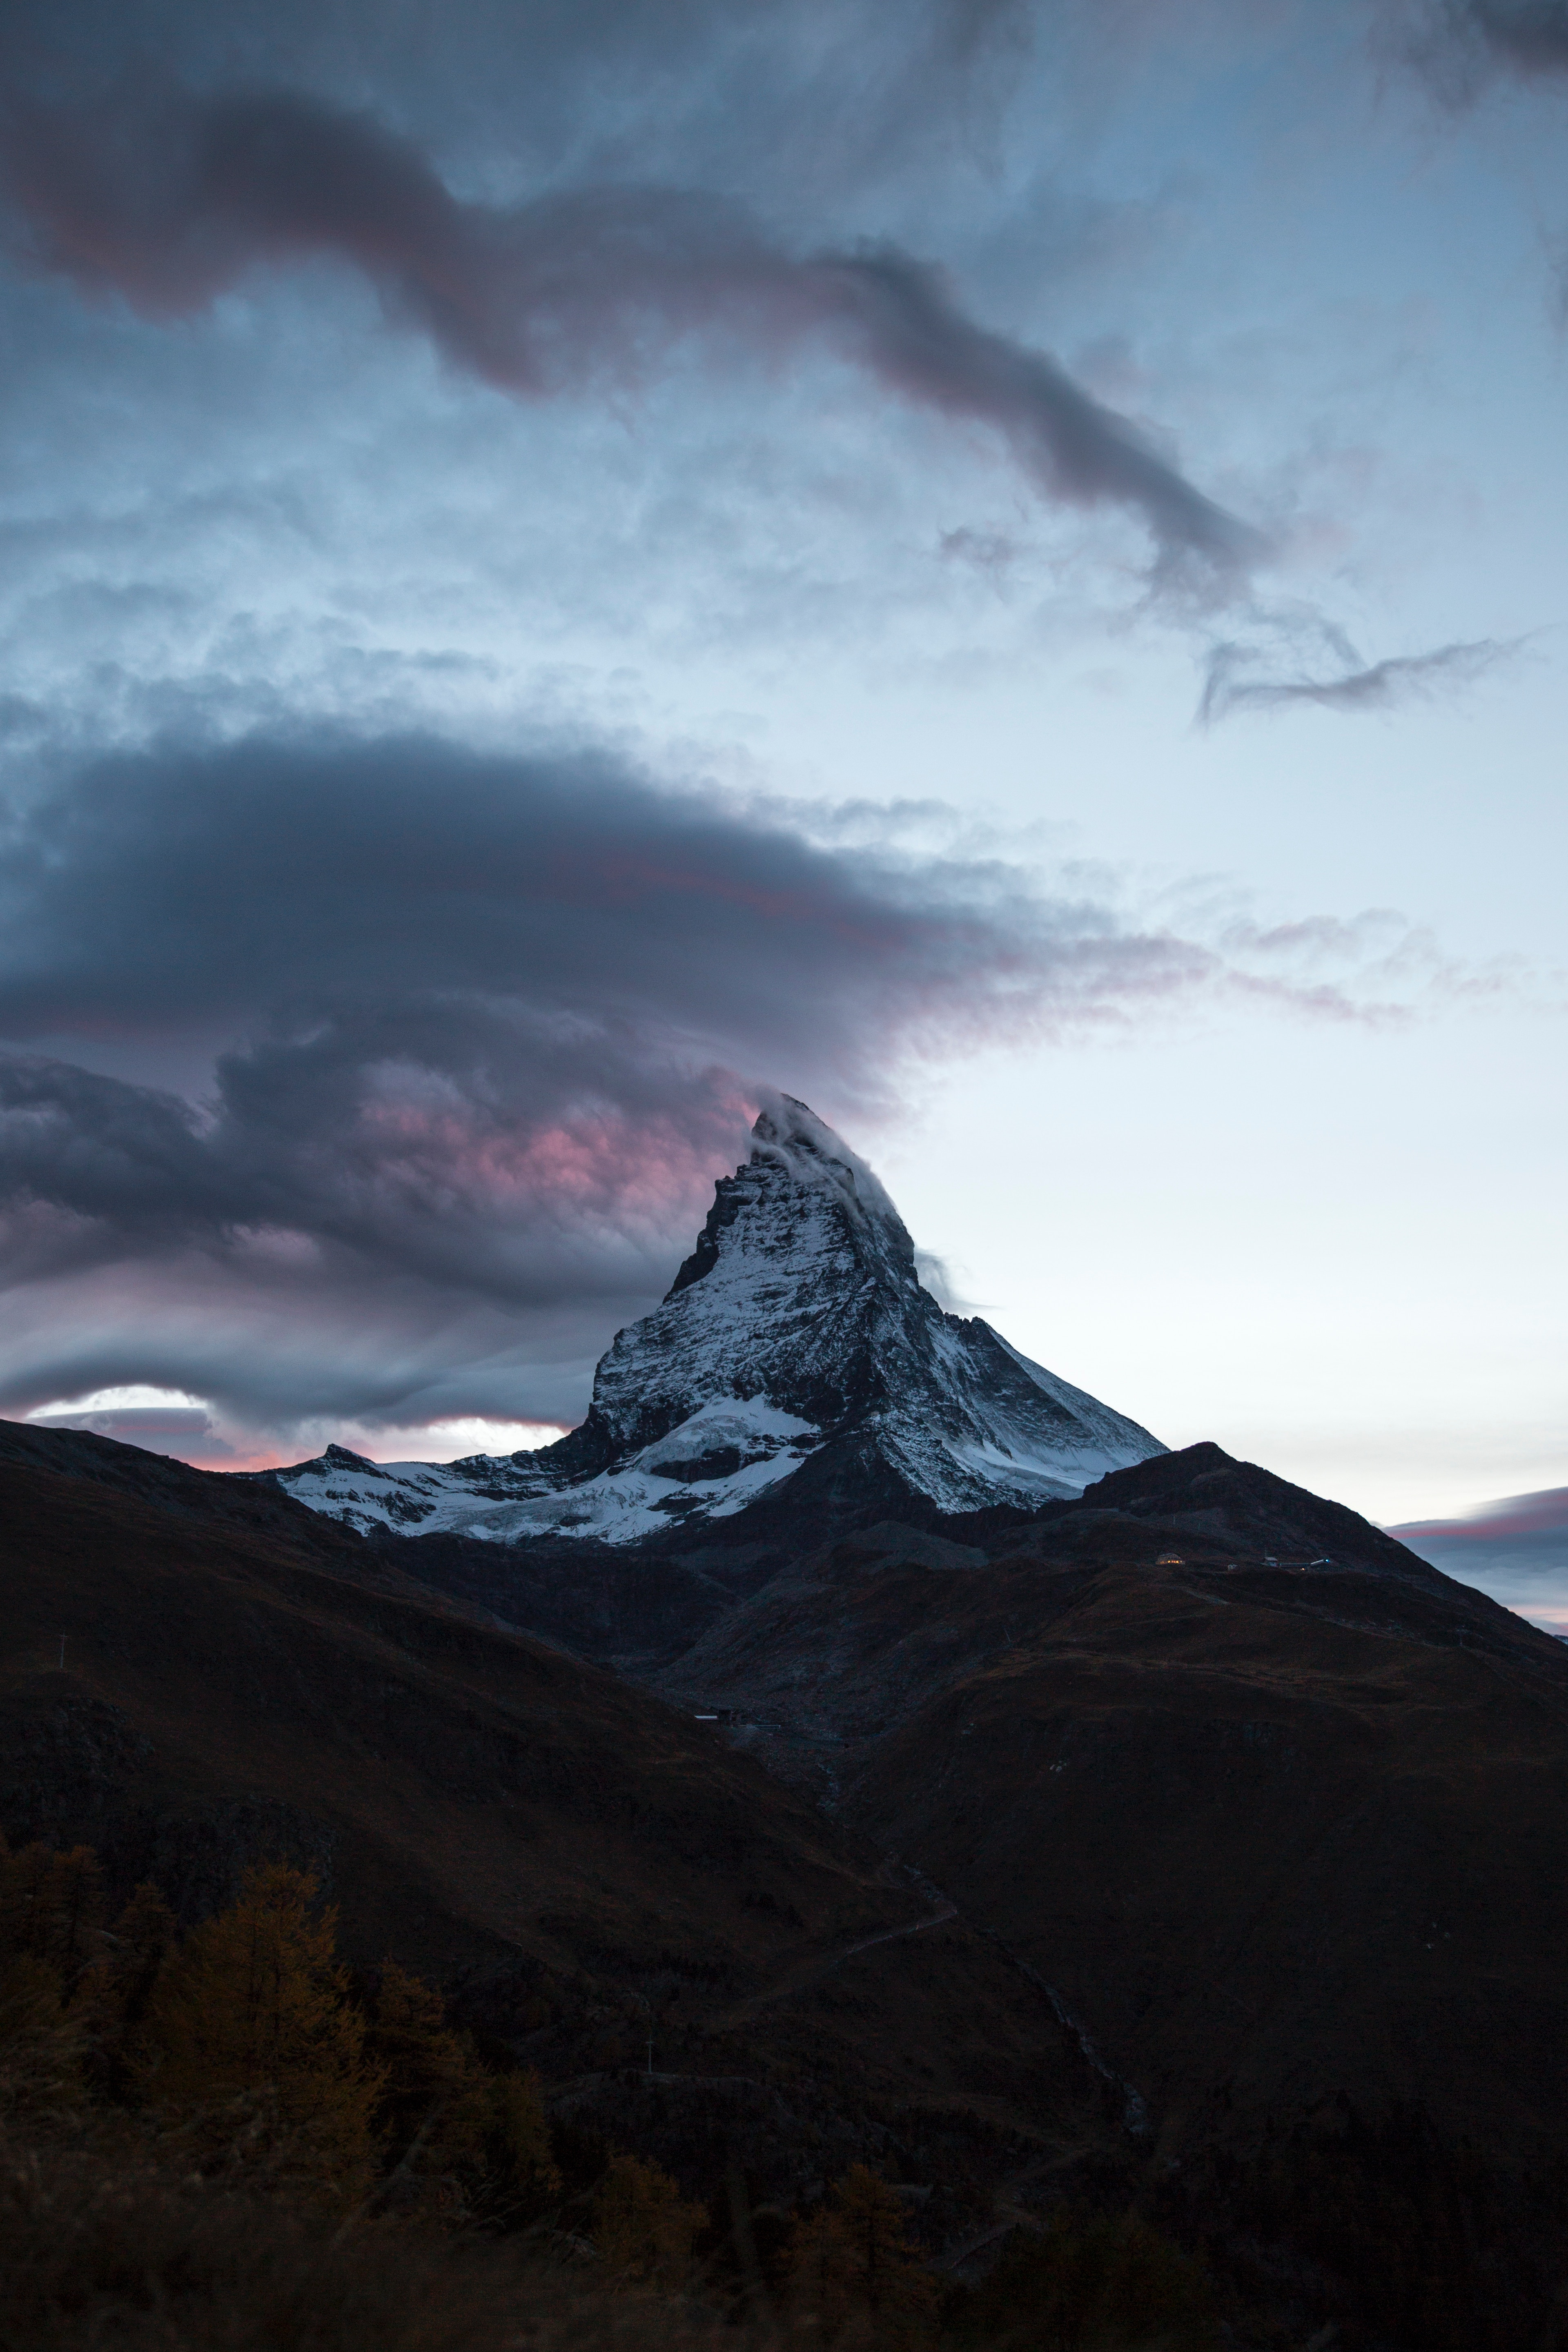 67074 download wallpaper Nature, Clouds, Mountain, Vertex, Top, Switzerland screensavers and pictures for free